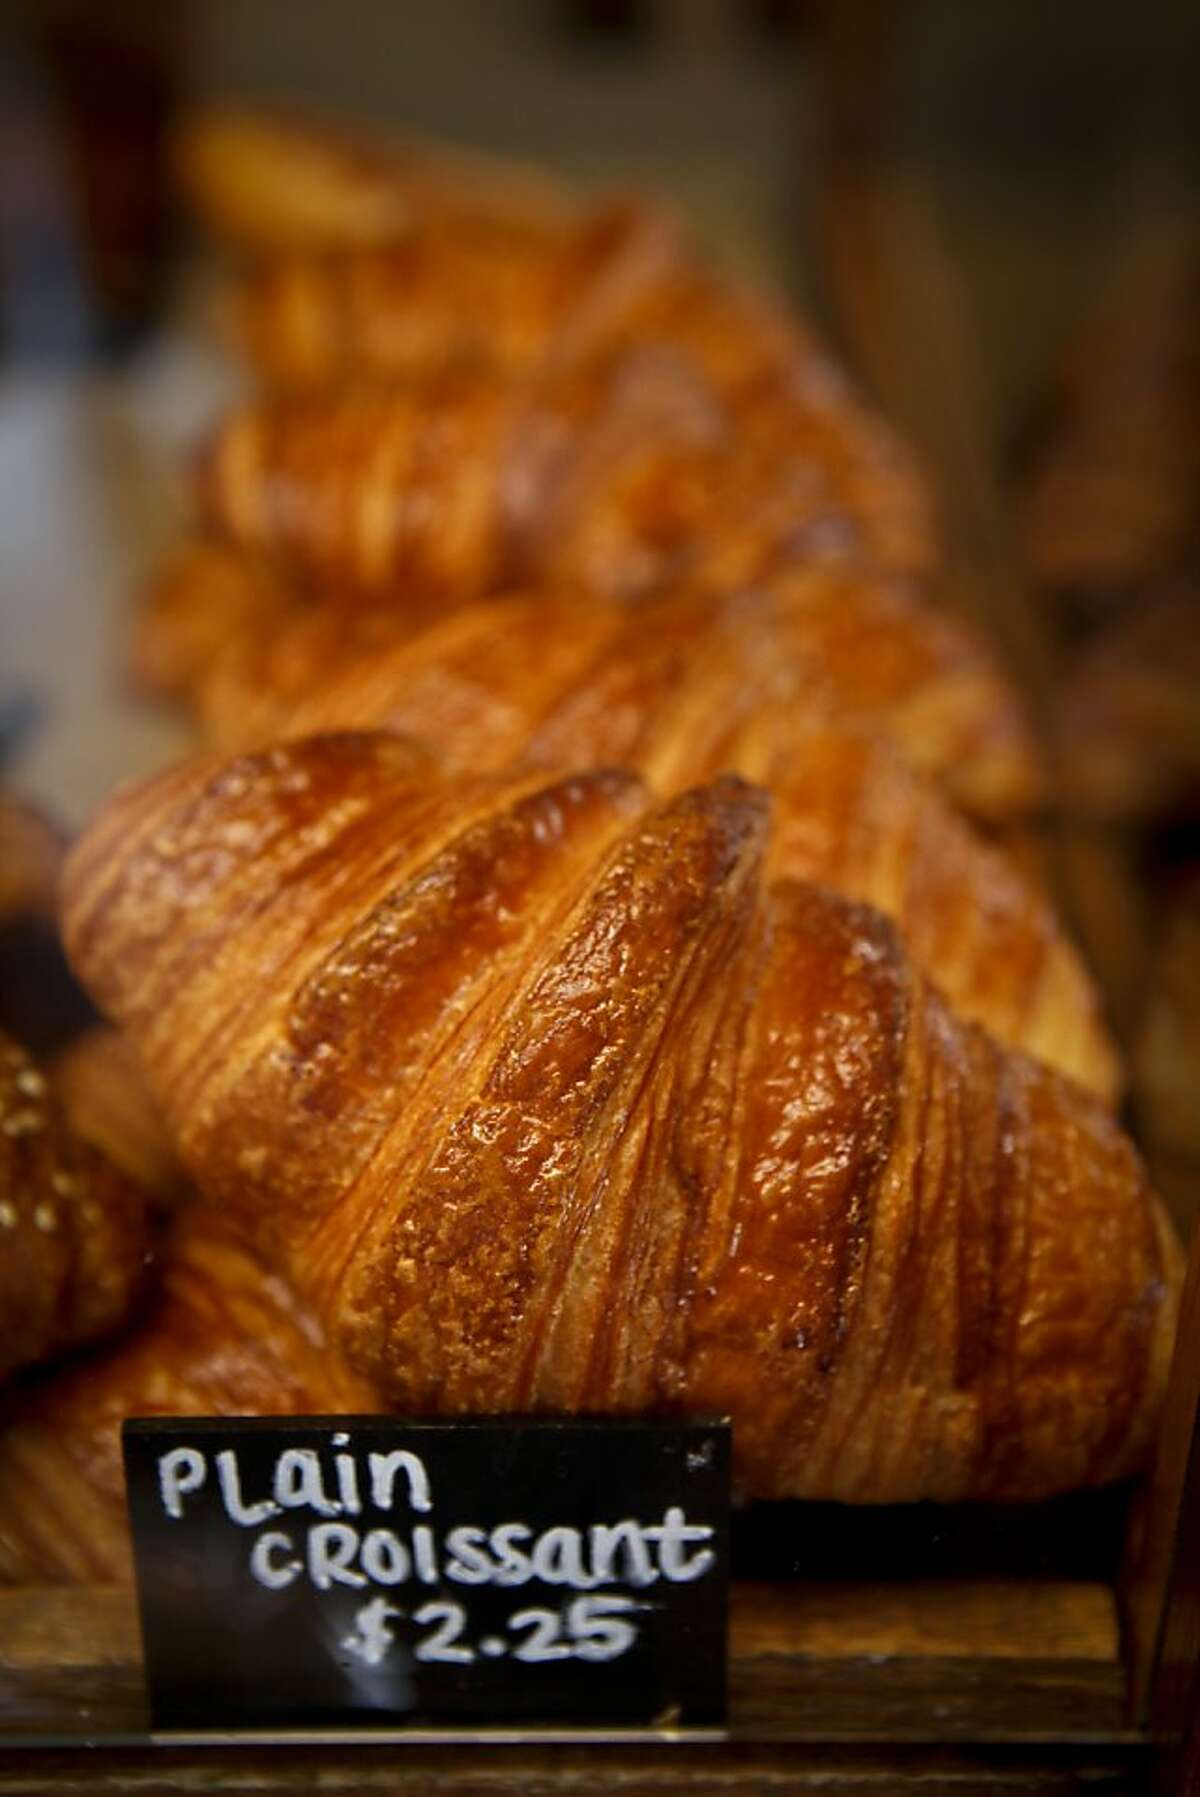 La Boulange offers a range of breads and pastries, including croissants.